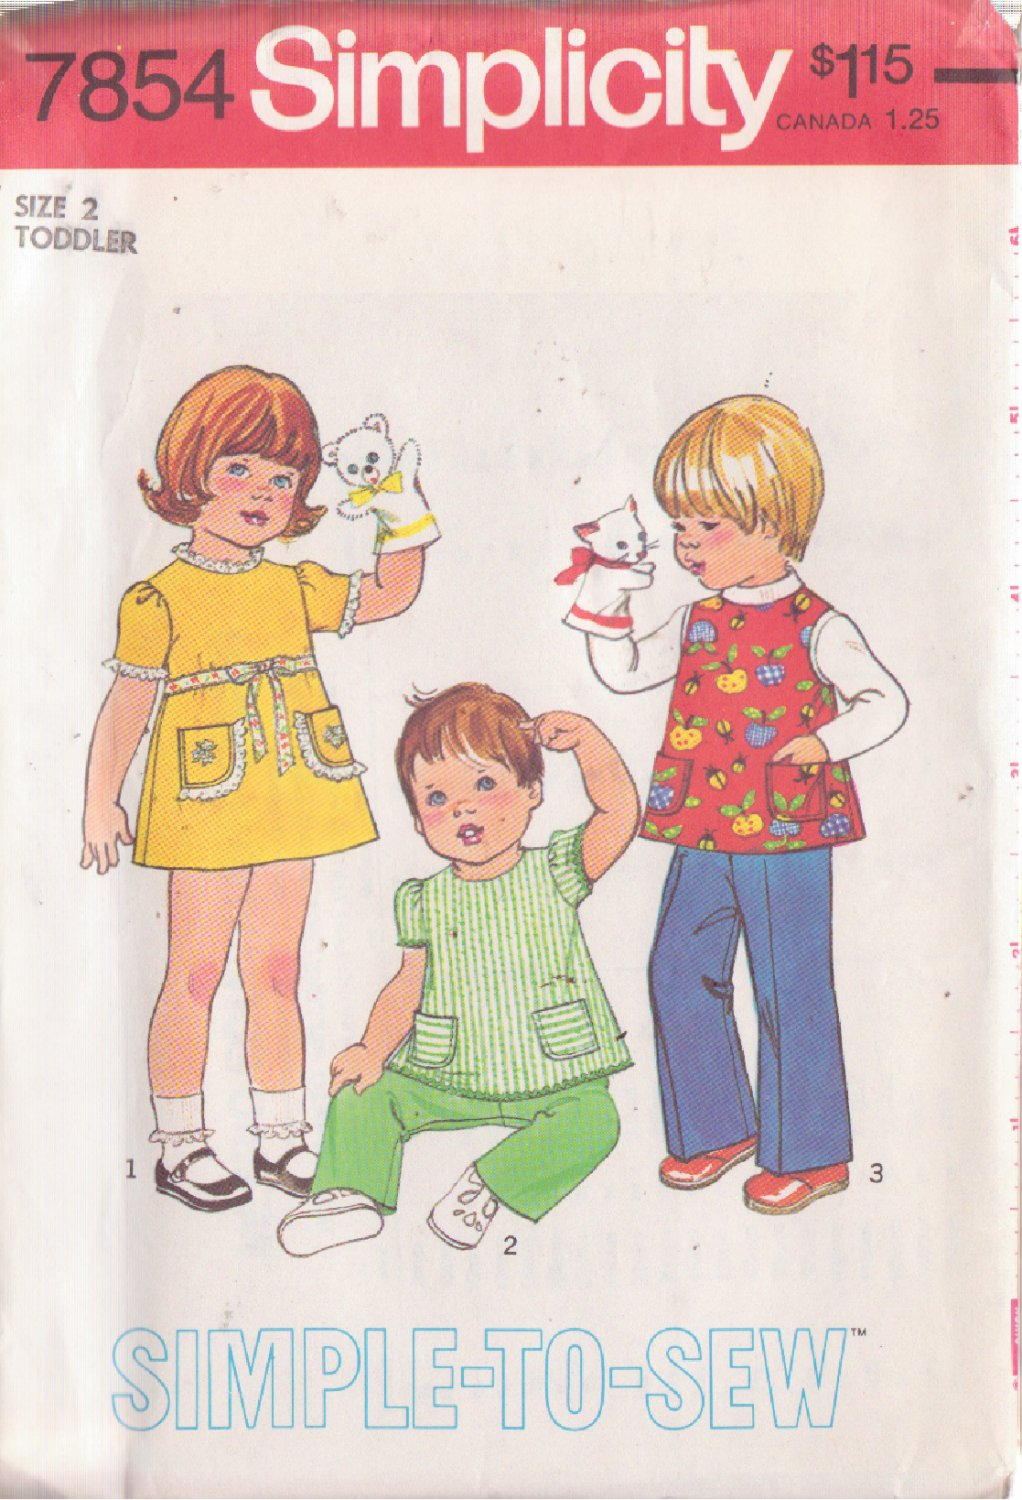 SIMPLICITY 1977 PATTERN 7854 SIZE 2 TODDLER'S DRESS, TOP AND PANTS